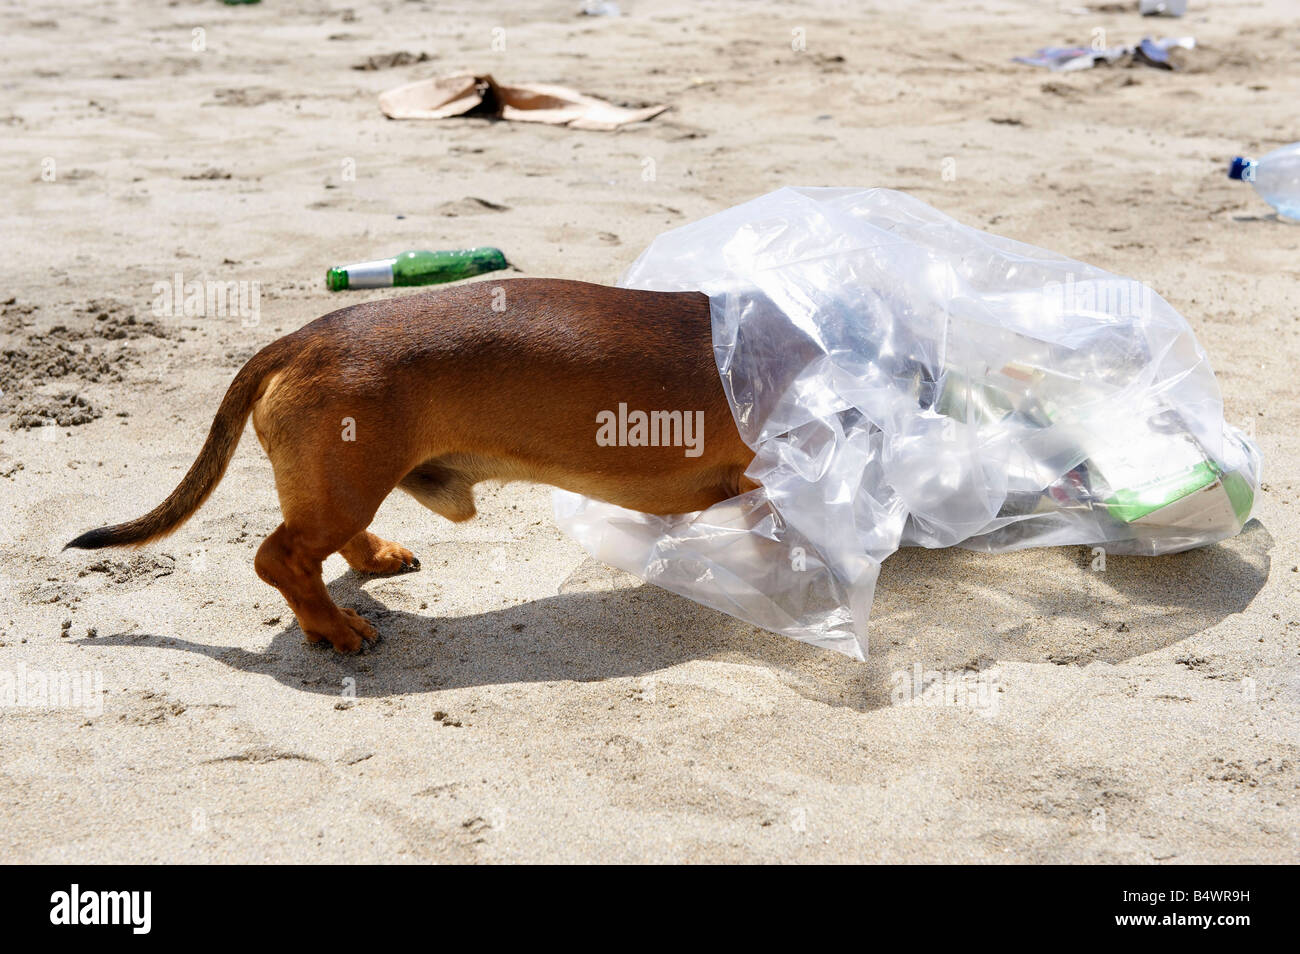 Dog with head in garbage bag - Stock Image